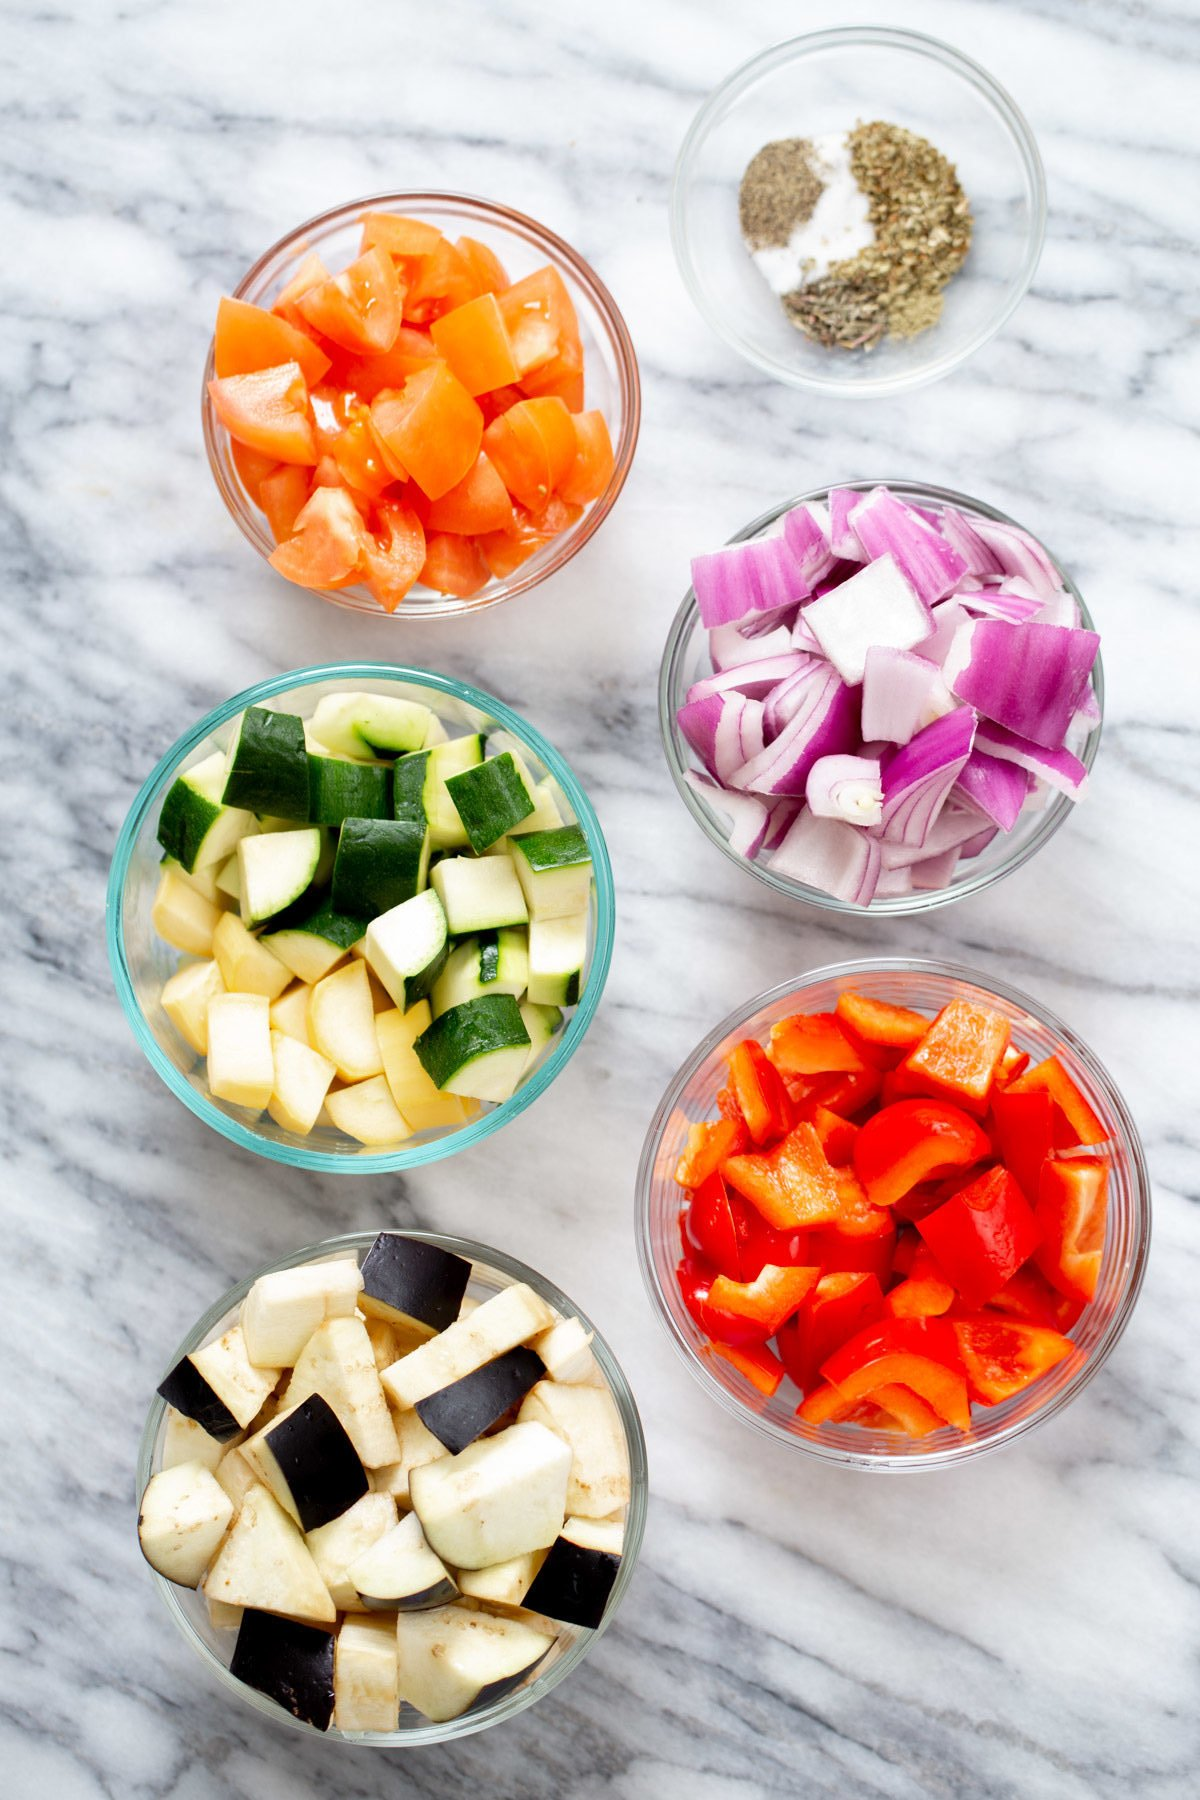 ingredients for baked ratatouille in glass bowls